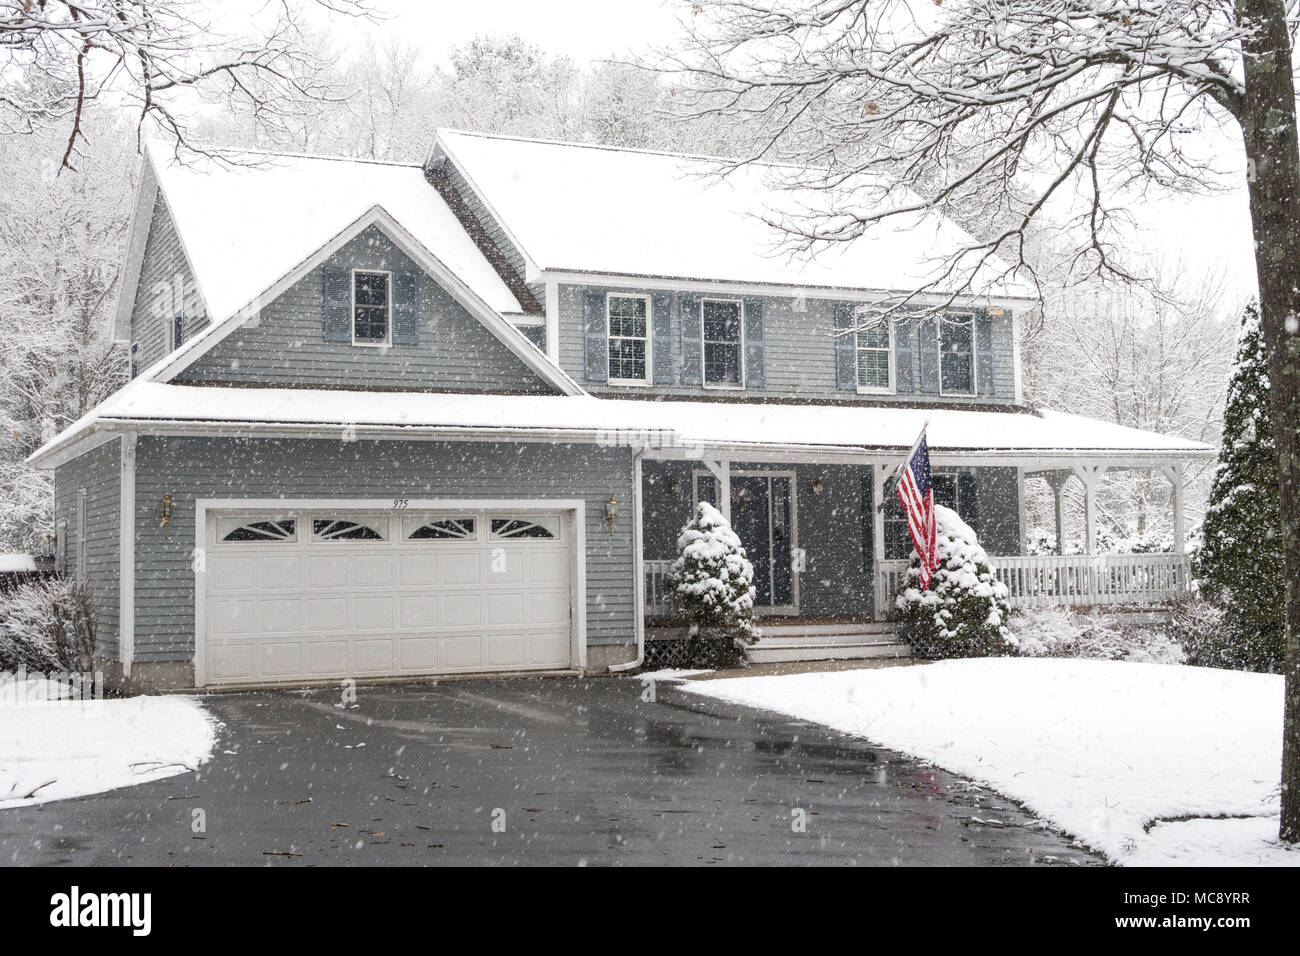 Luxury Suburban House in a Snowstorm, MA, USA - Stock Image